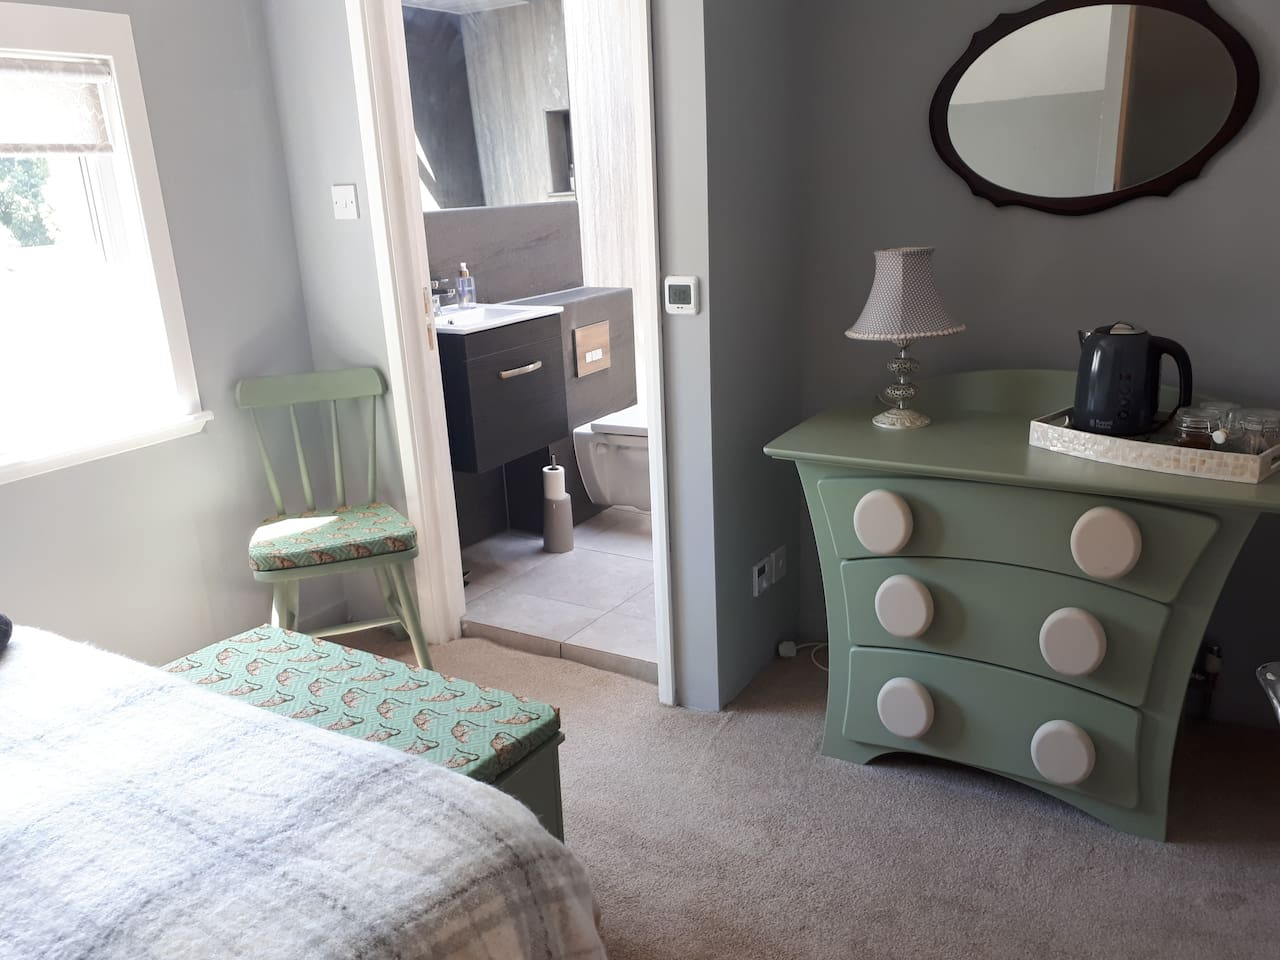 A warm and cosy guest bedroom with en suite.